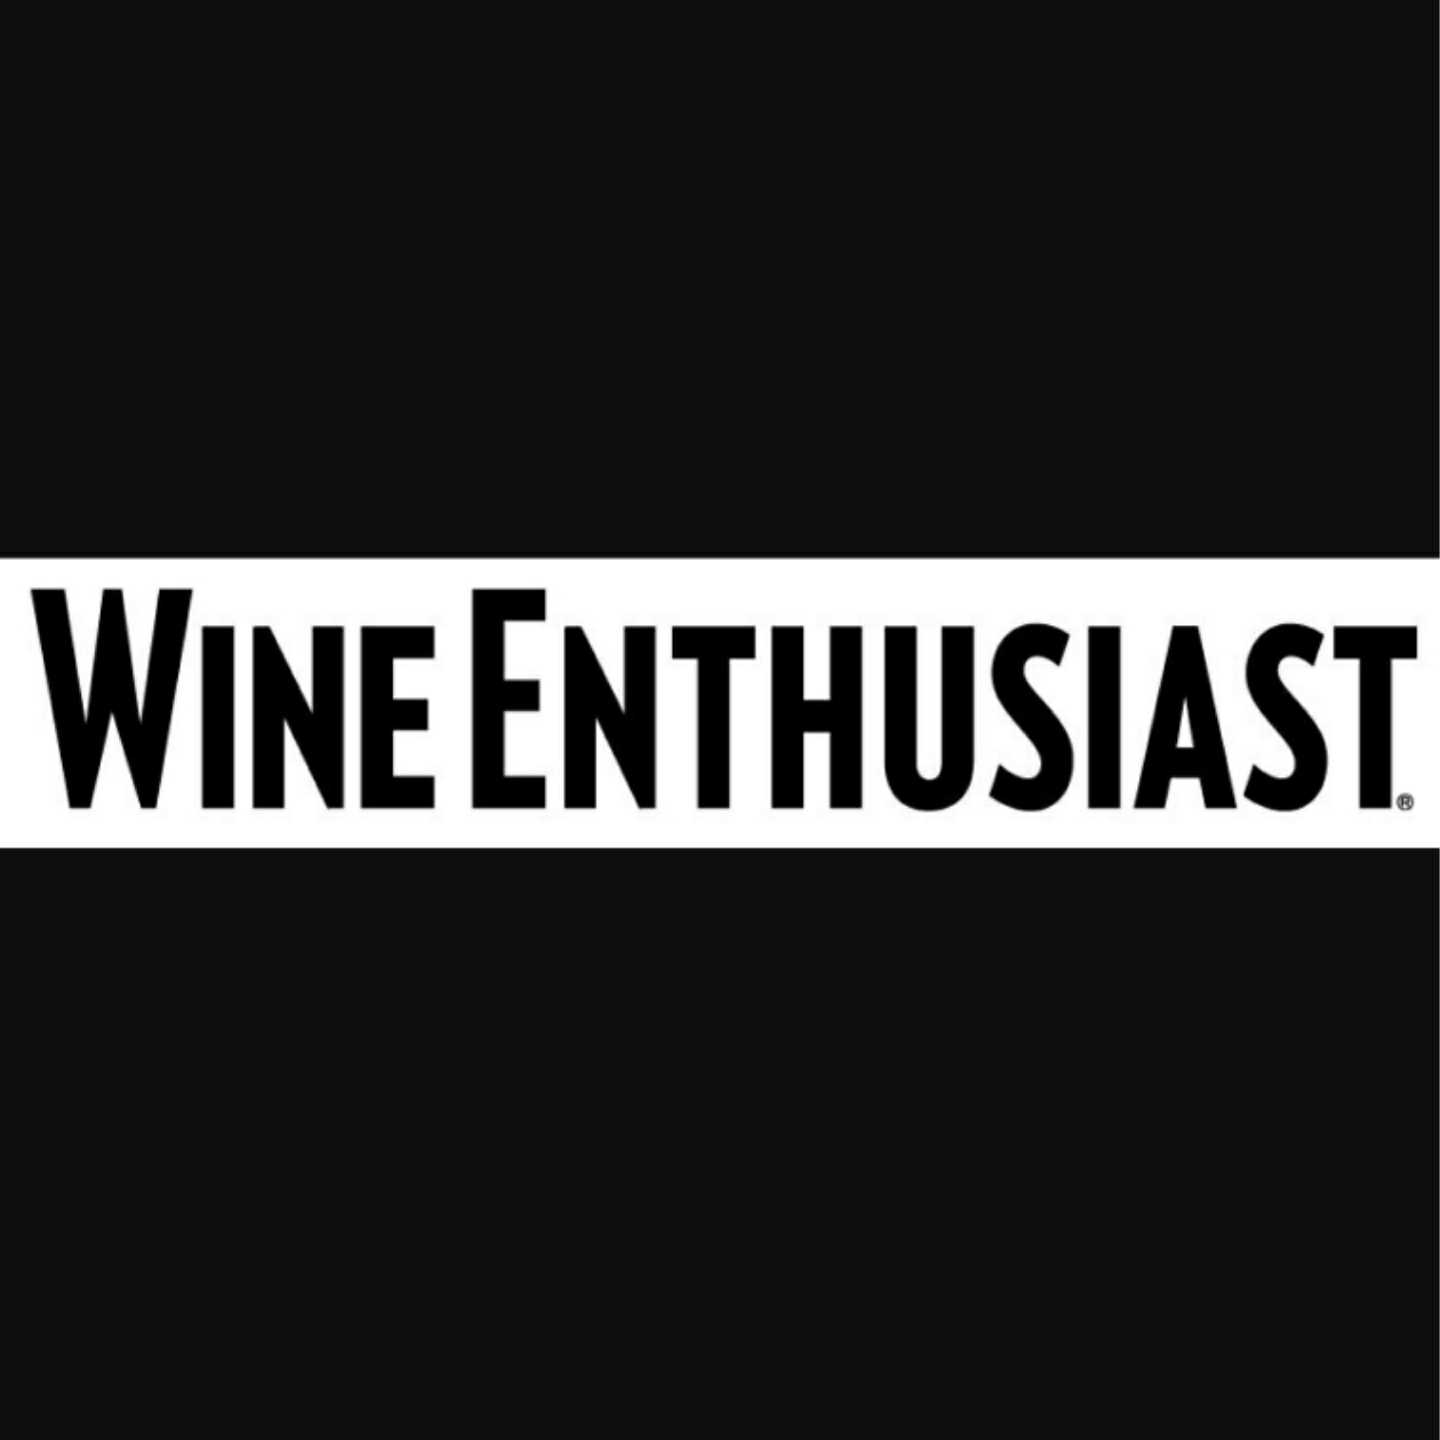 Wine enthusiast, 360 MAGAZINE